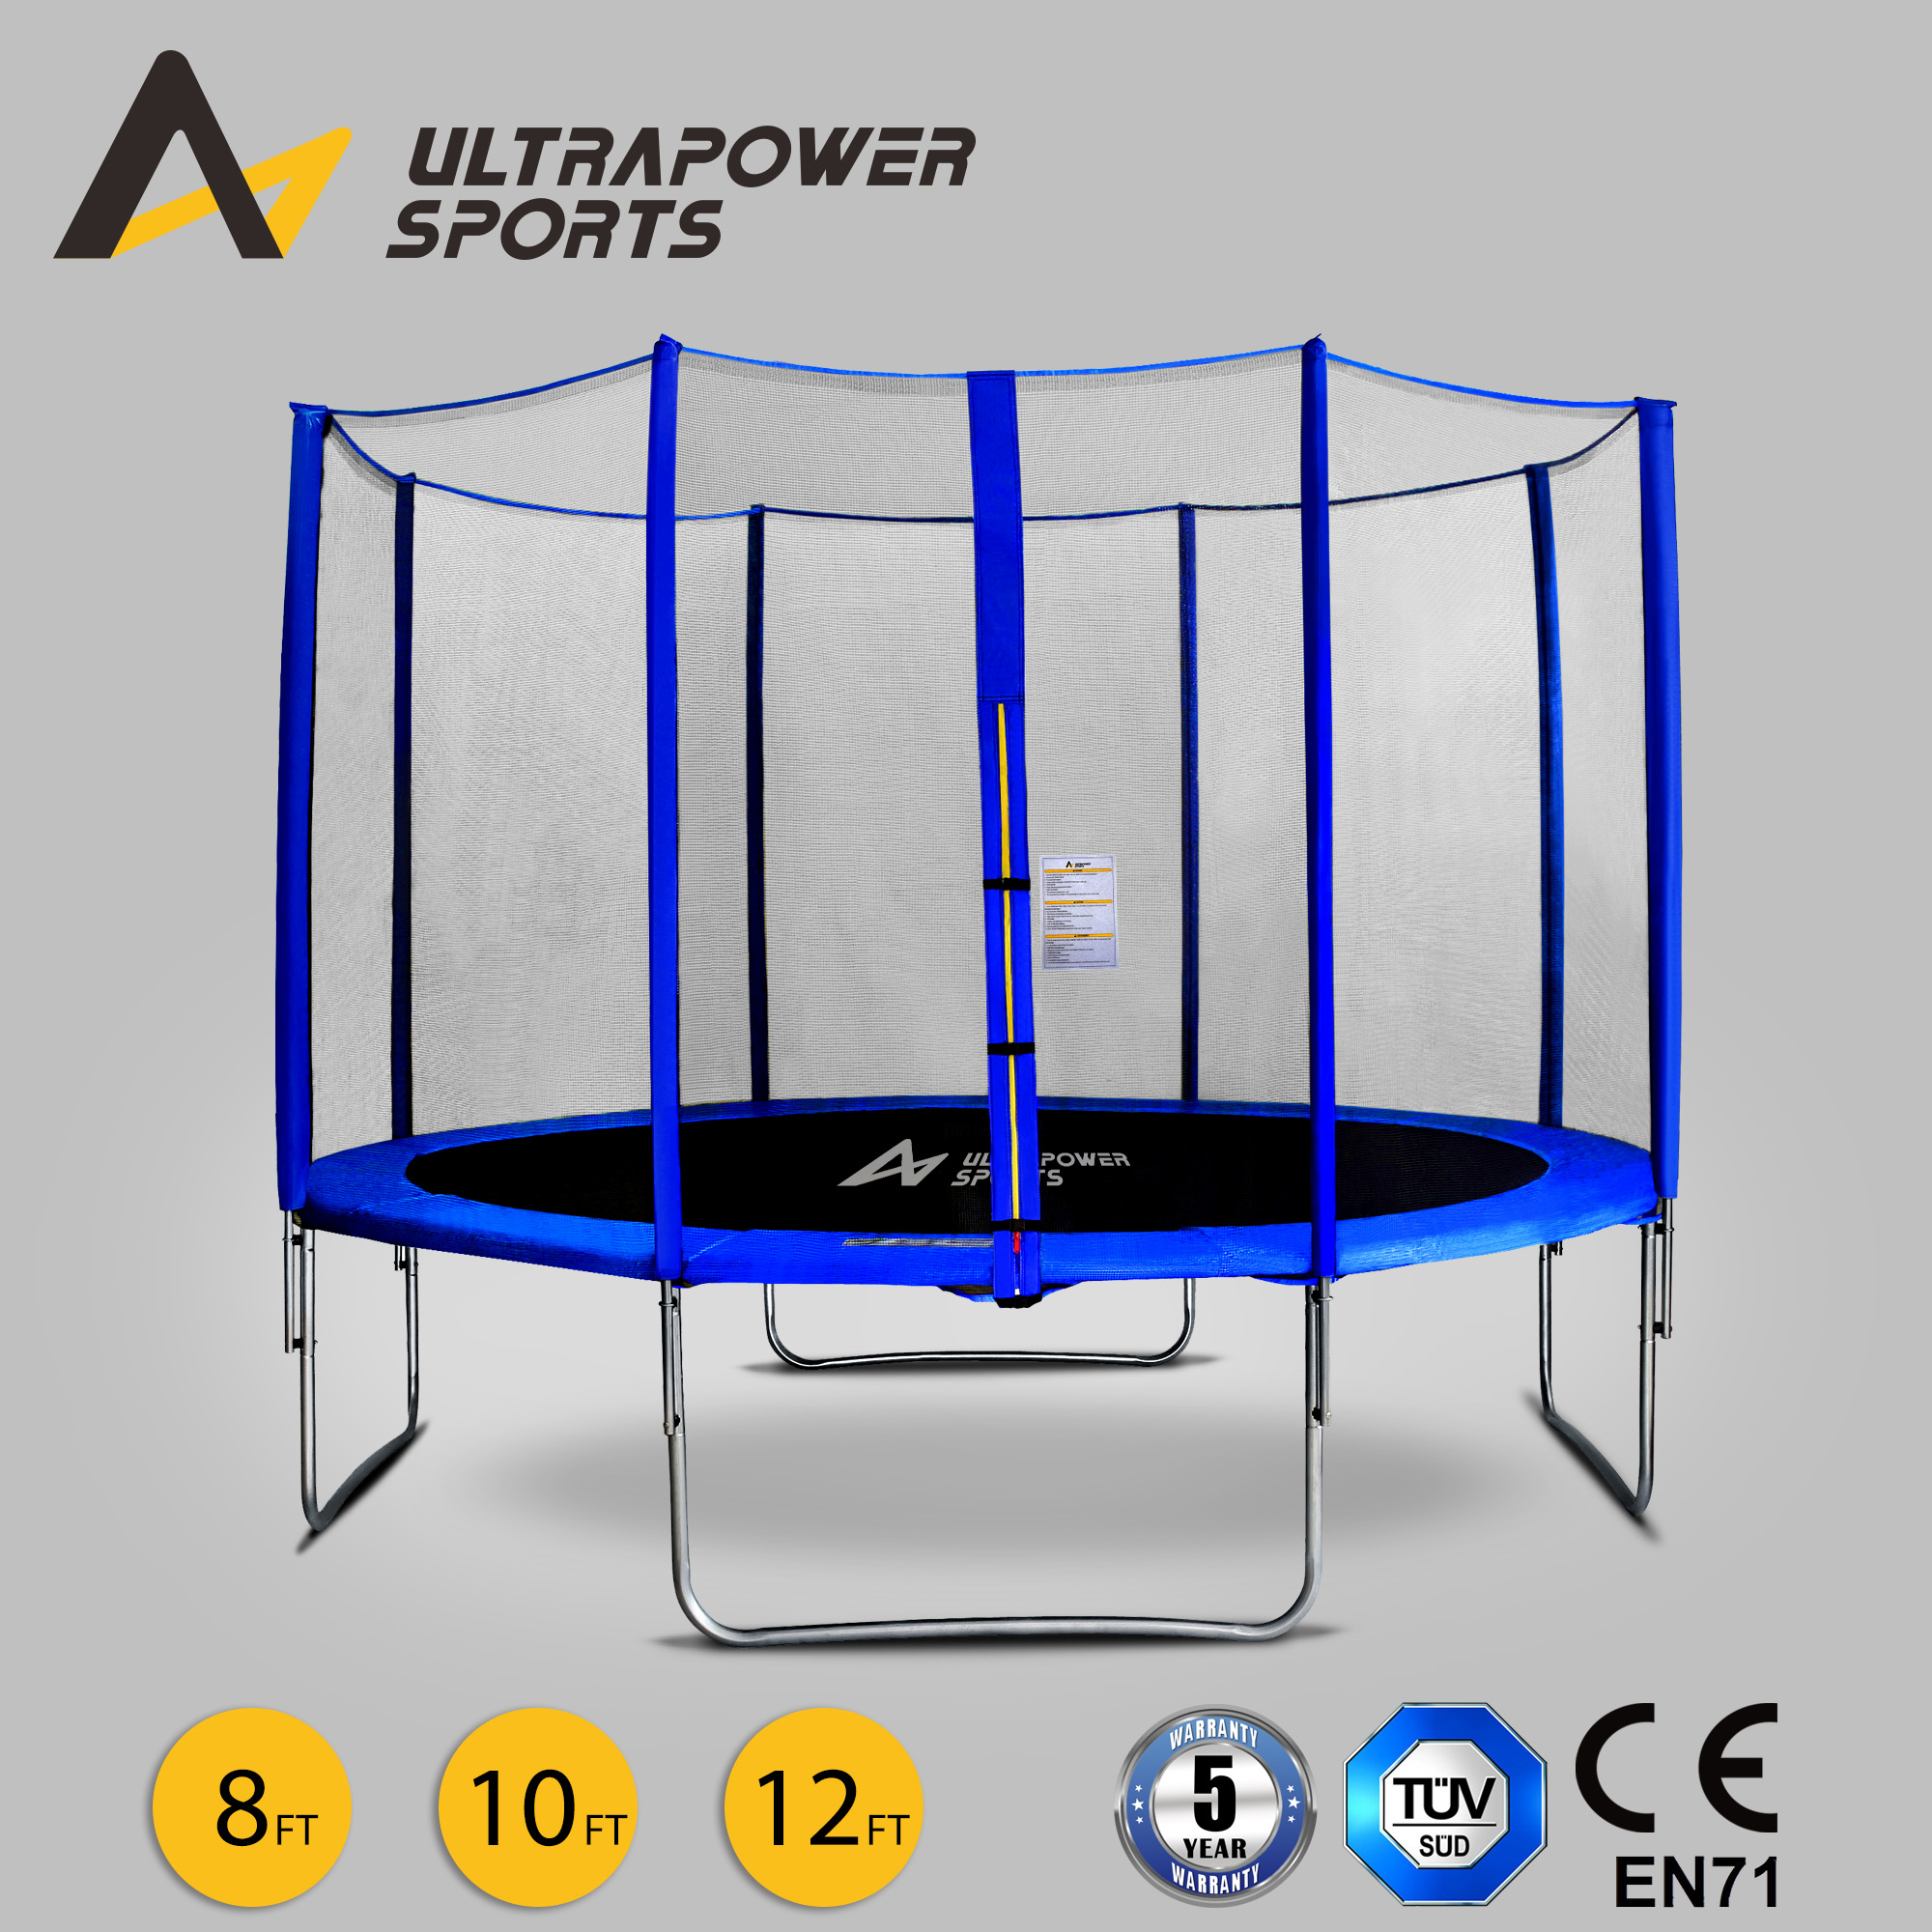 New Heavy Duty Trampoline 14 Ft With Ladder Safety Net: 8 10 12FT Trampoline With Enclosure Safety Net Pad Ladder